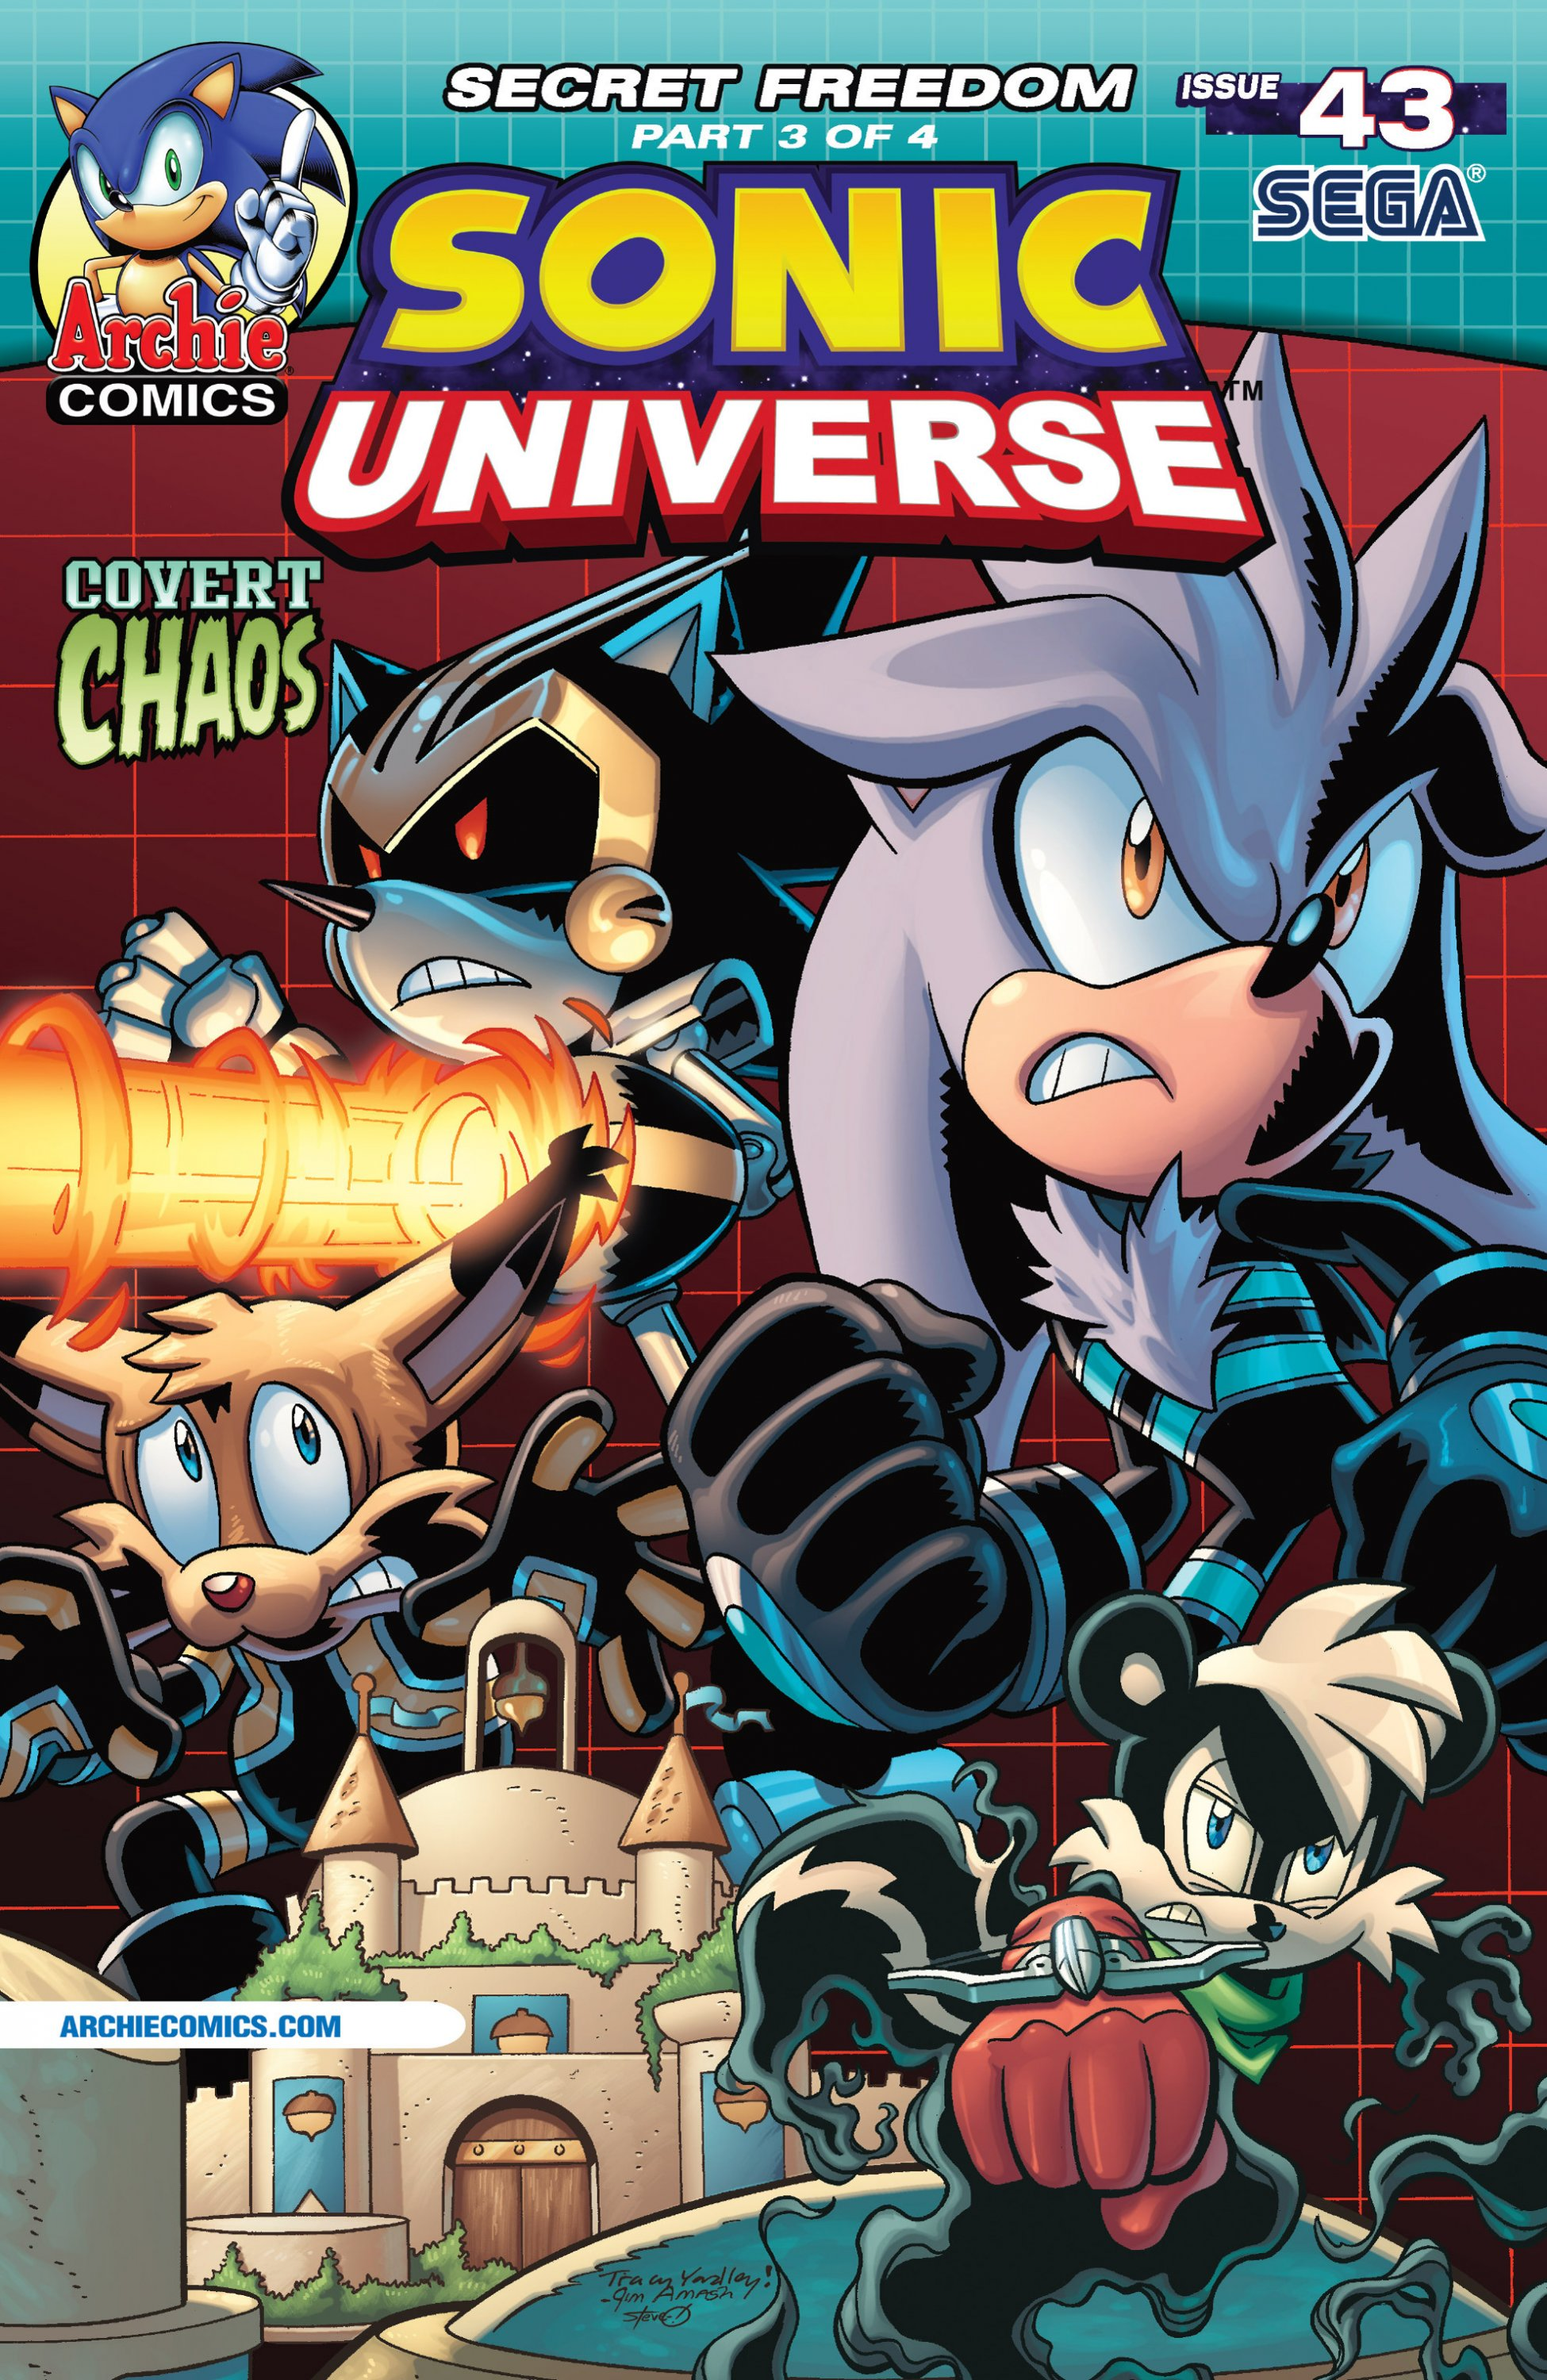 Sonic Universe 043 (October 2012)